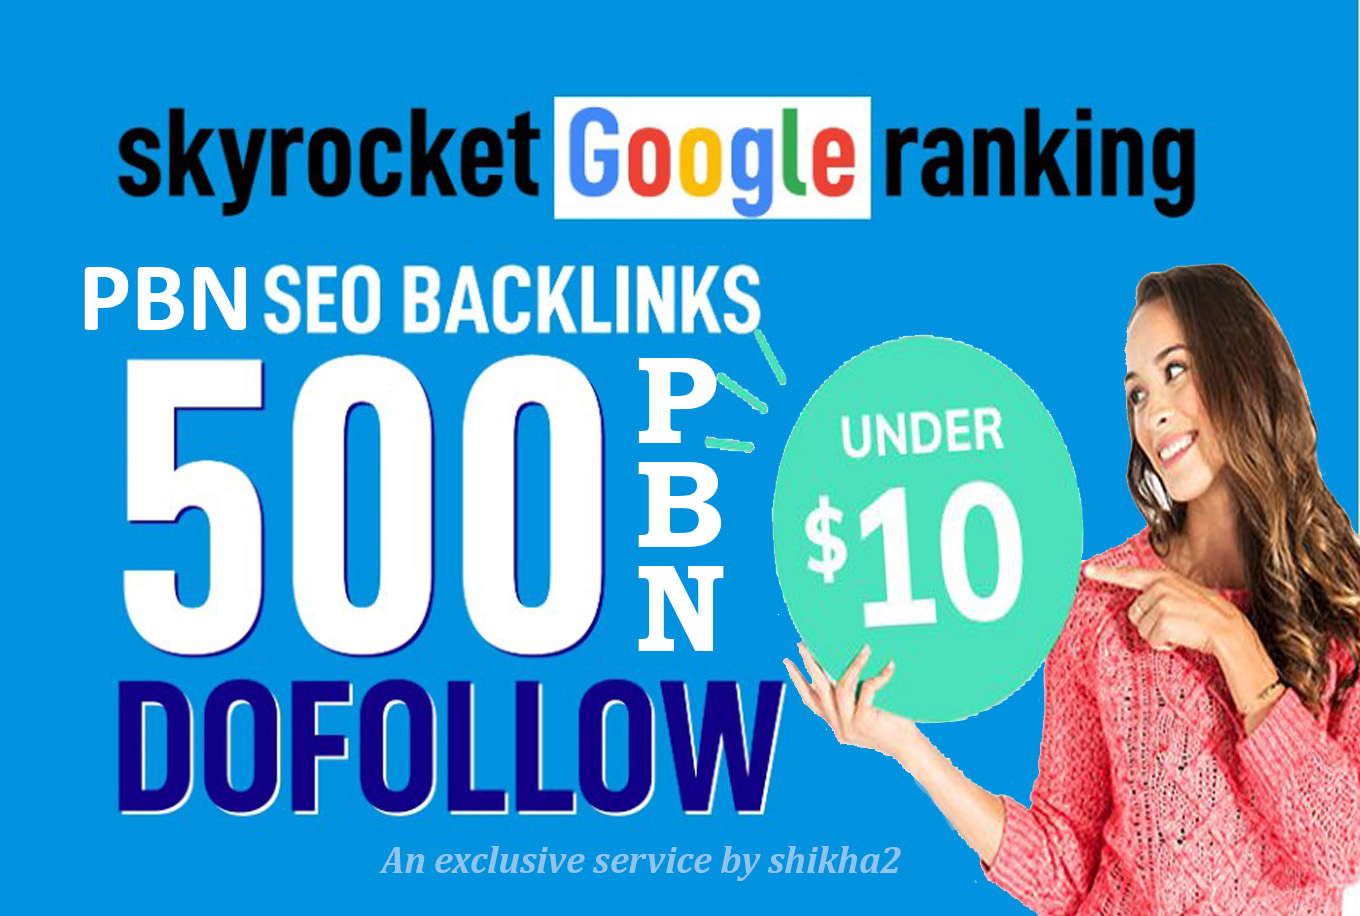 Create 500+ Super Web 2.0 Blogs post baclinks with login details skyrocket google ranking